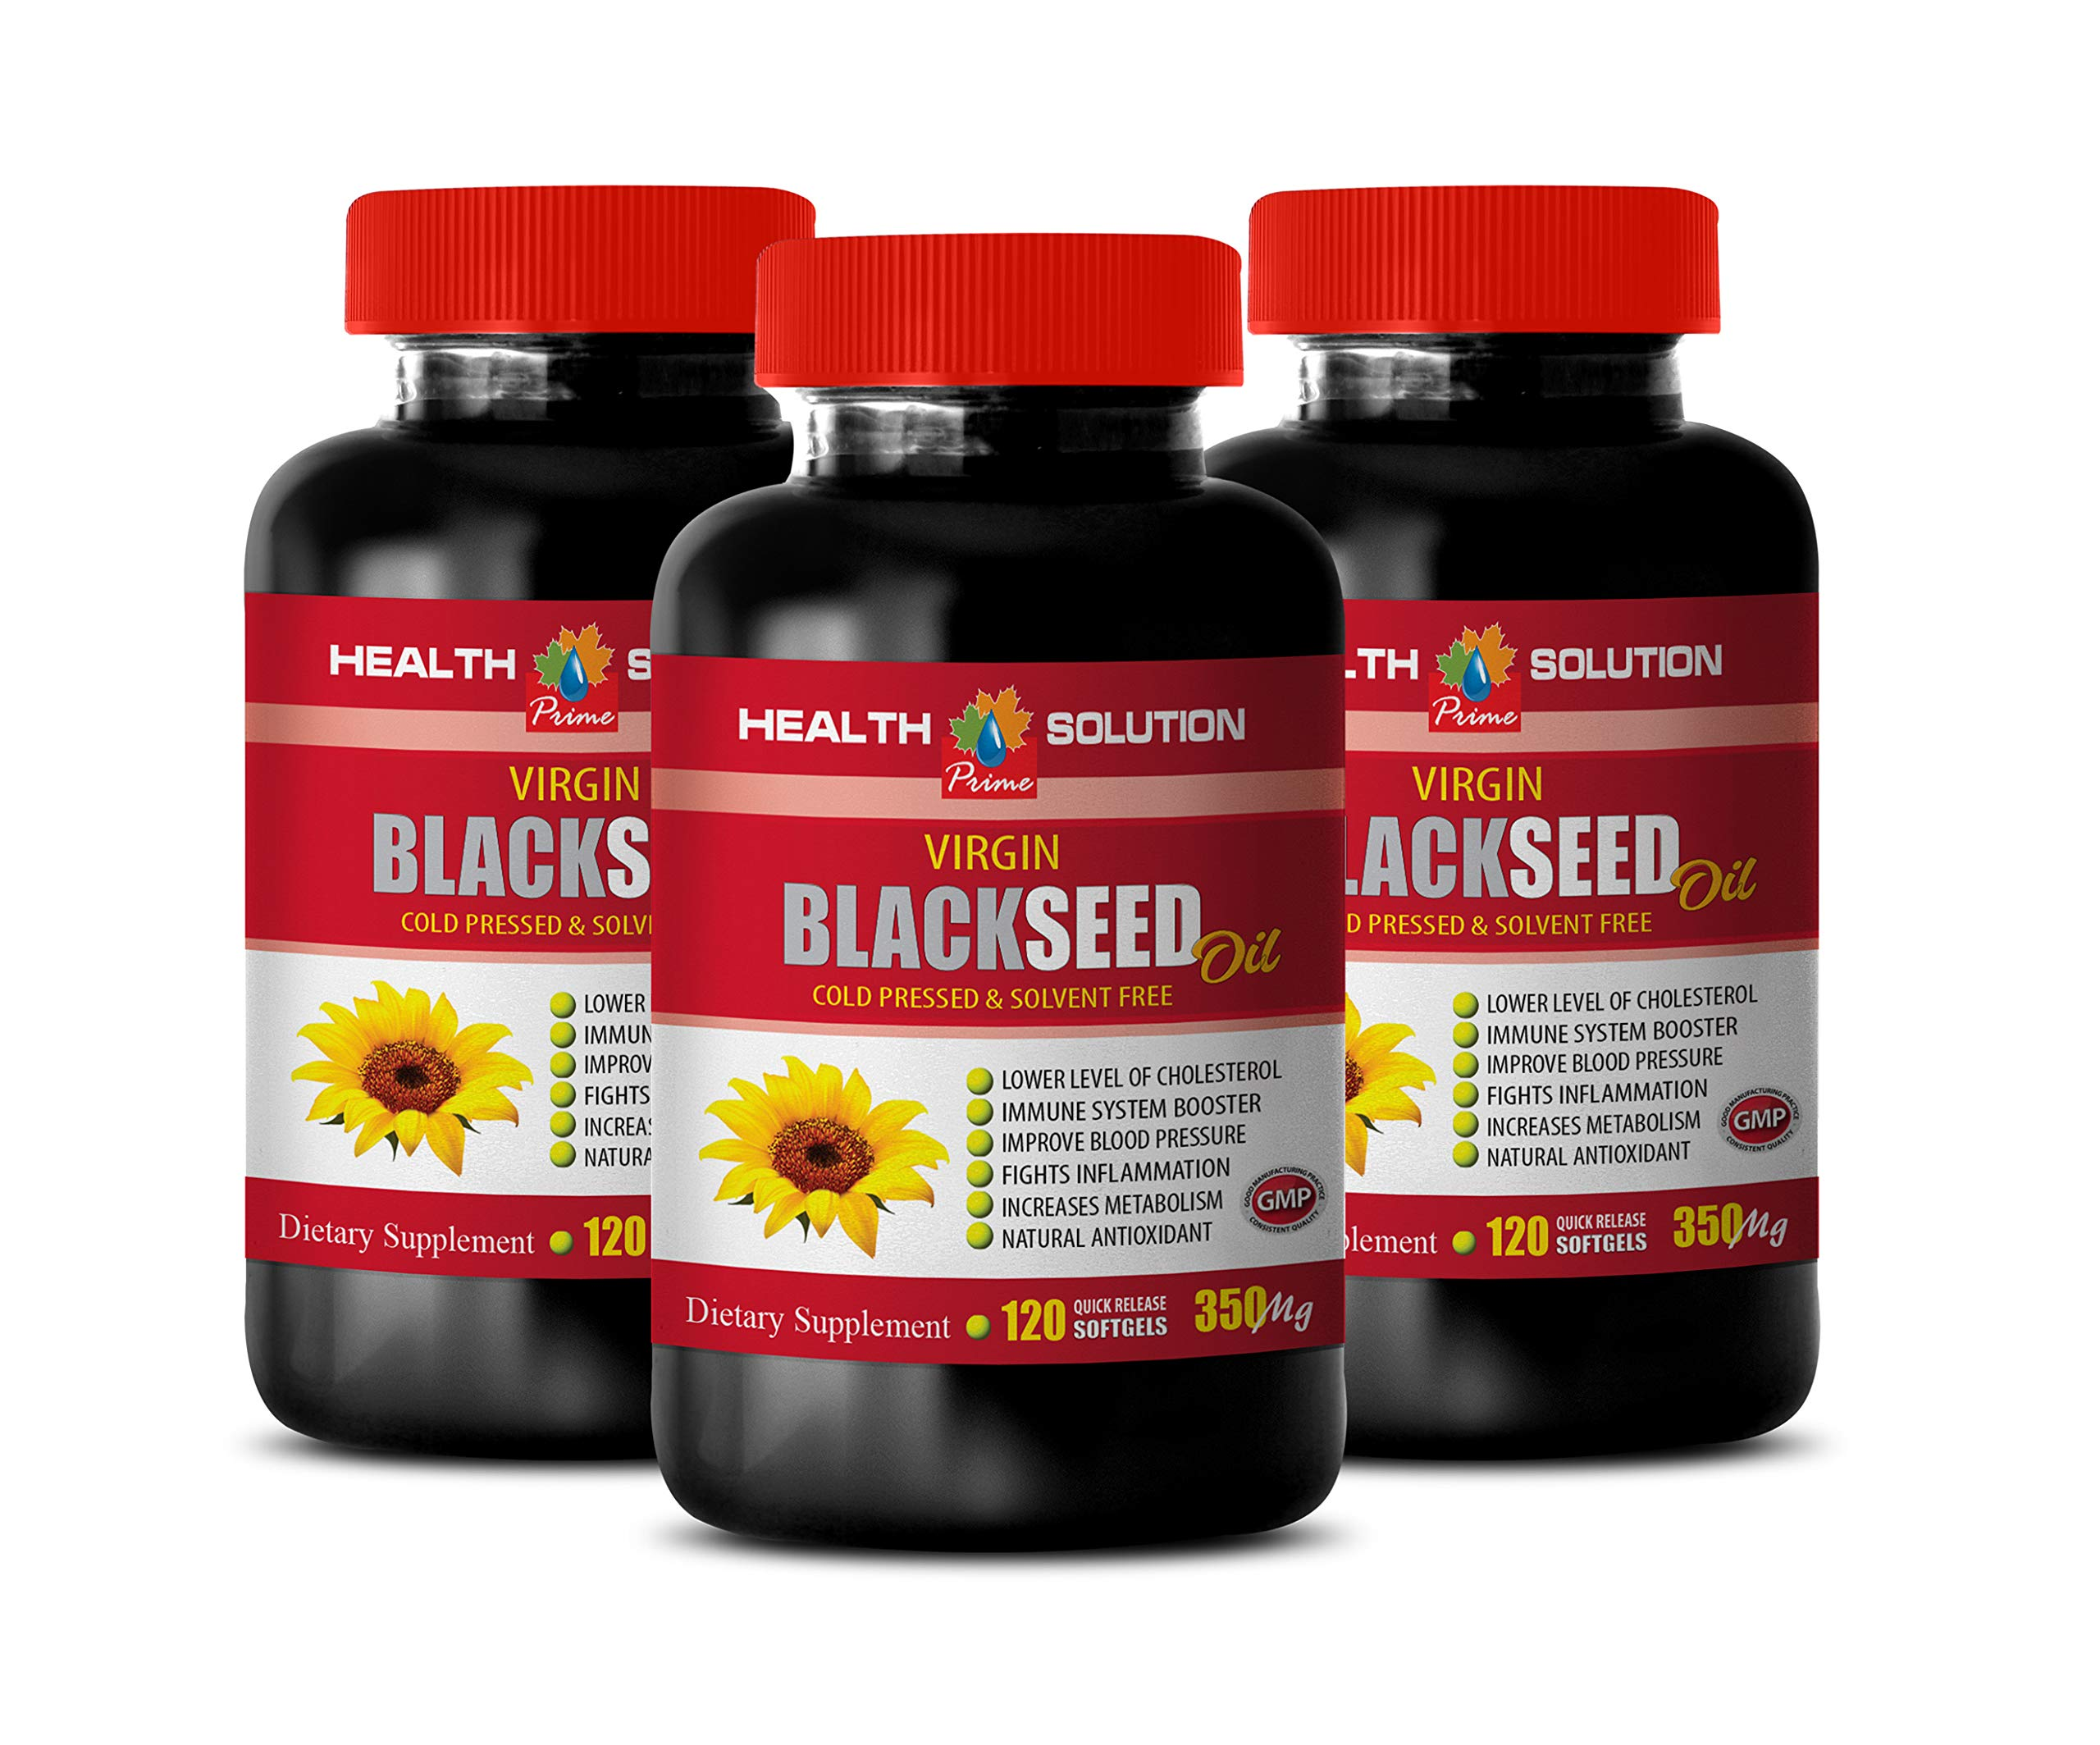 Liver Support and Cleanse Supplement - Black Seed Oil 350 MG - Cold Pressed & Solvent Free - Black Seed Oil for Blood Pressure - 3 Bottles 360 Softgels